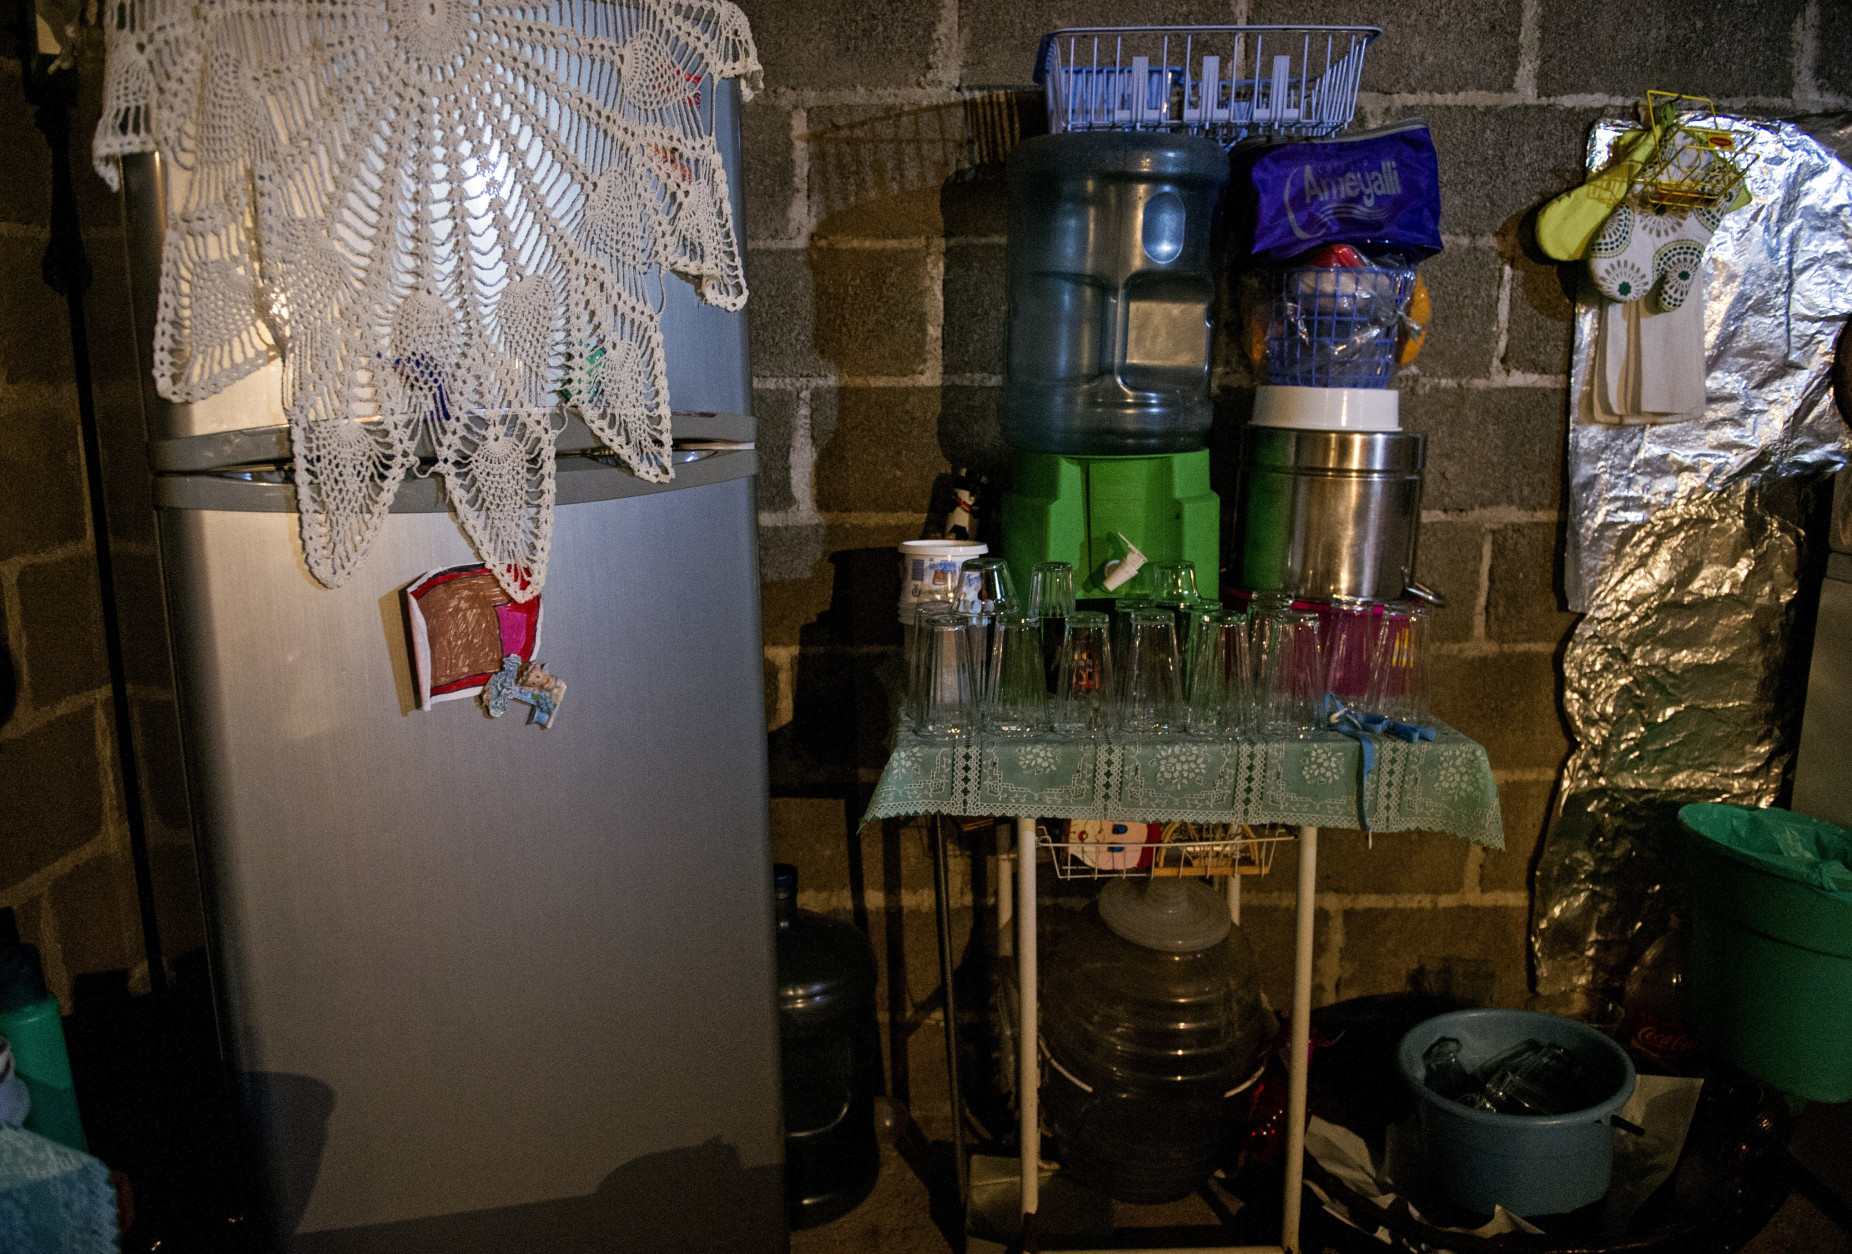 This Aug. 22, 2016 photo shows Edgar Serralde's kitchen, with a small table supporting a counter top water dispenser and drinking glasses, in Mexico City's borough Xochimilco. Like roughly one million Mexico City residents, Serralde isn't on the city's water system. Instead of relying on water trucks Serralde built his one-bedroom house with an intentionally slanted roof, creating a makeshift rain harvesting system. (AP Photo/Nick Wagner)